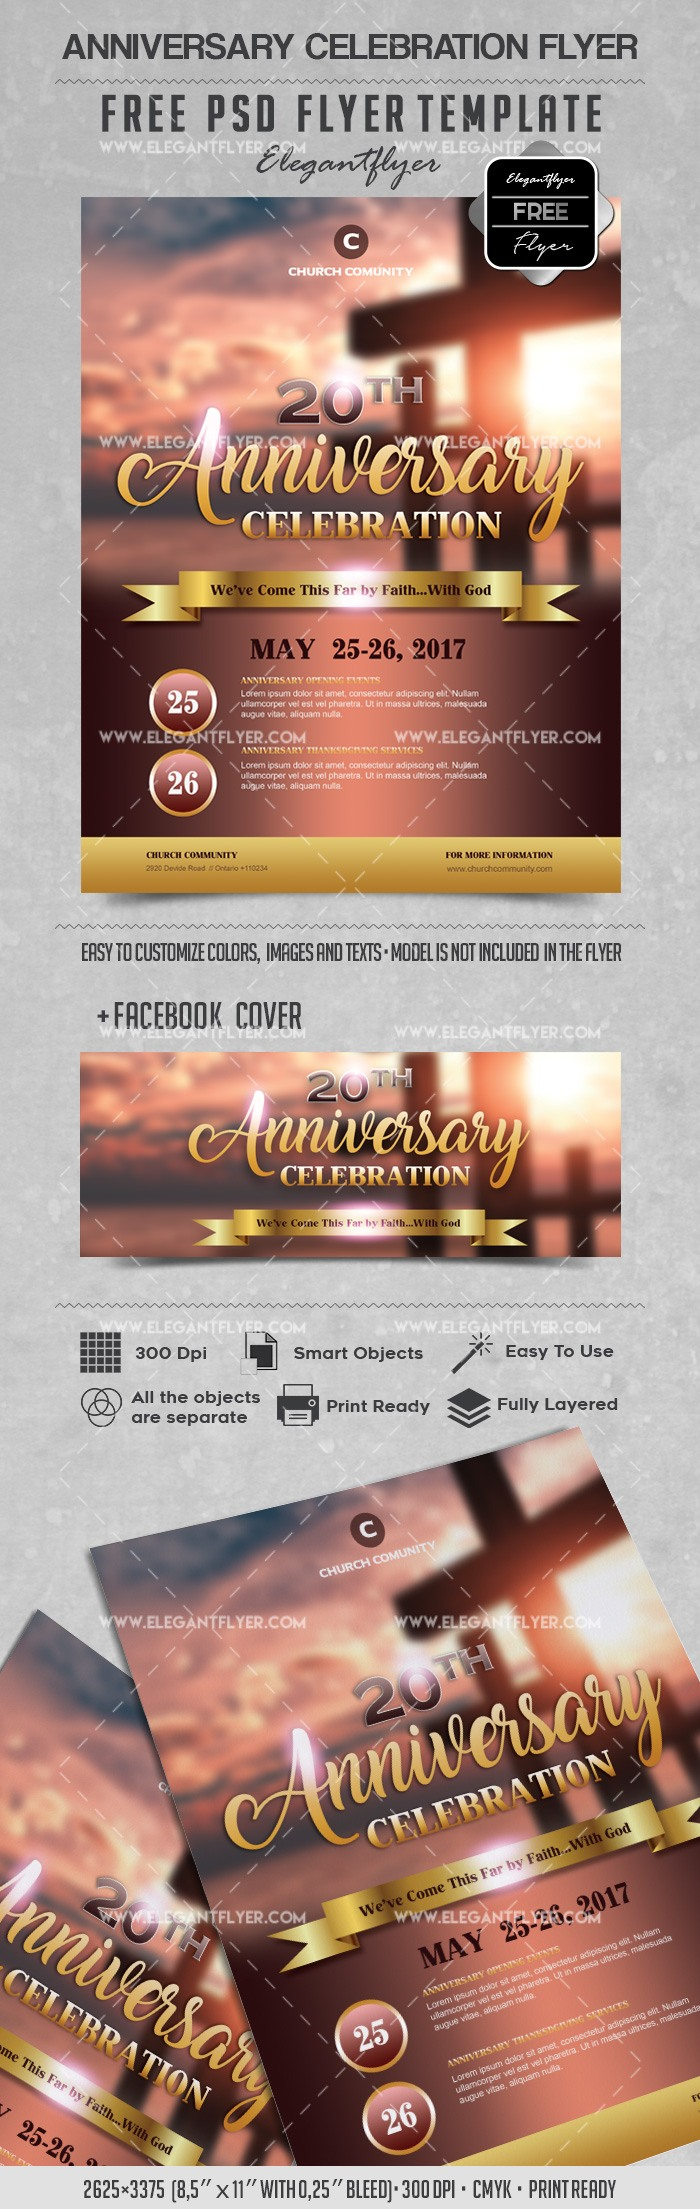 anniversary celebration  u2013 free psd flyers template  u2013 by elegantflyer